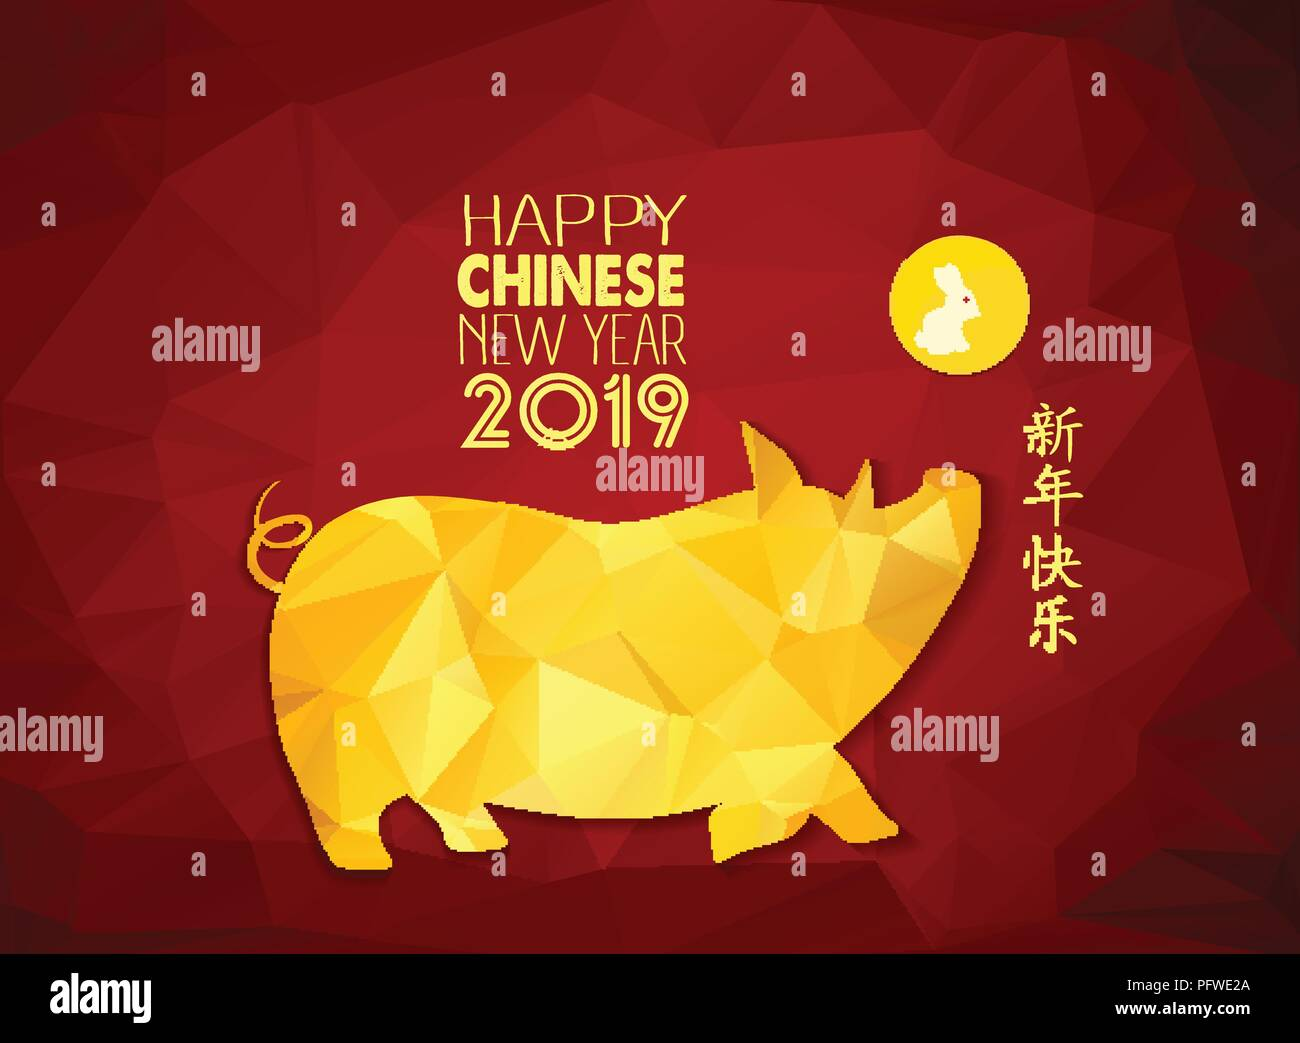 happy chinese new year 2019 year of the pig polygonal chinese characters mean happy new year wealthy zodiac sign for greetings card flyers invita